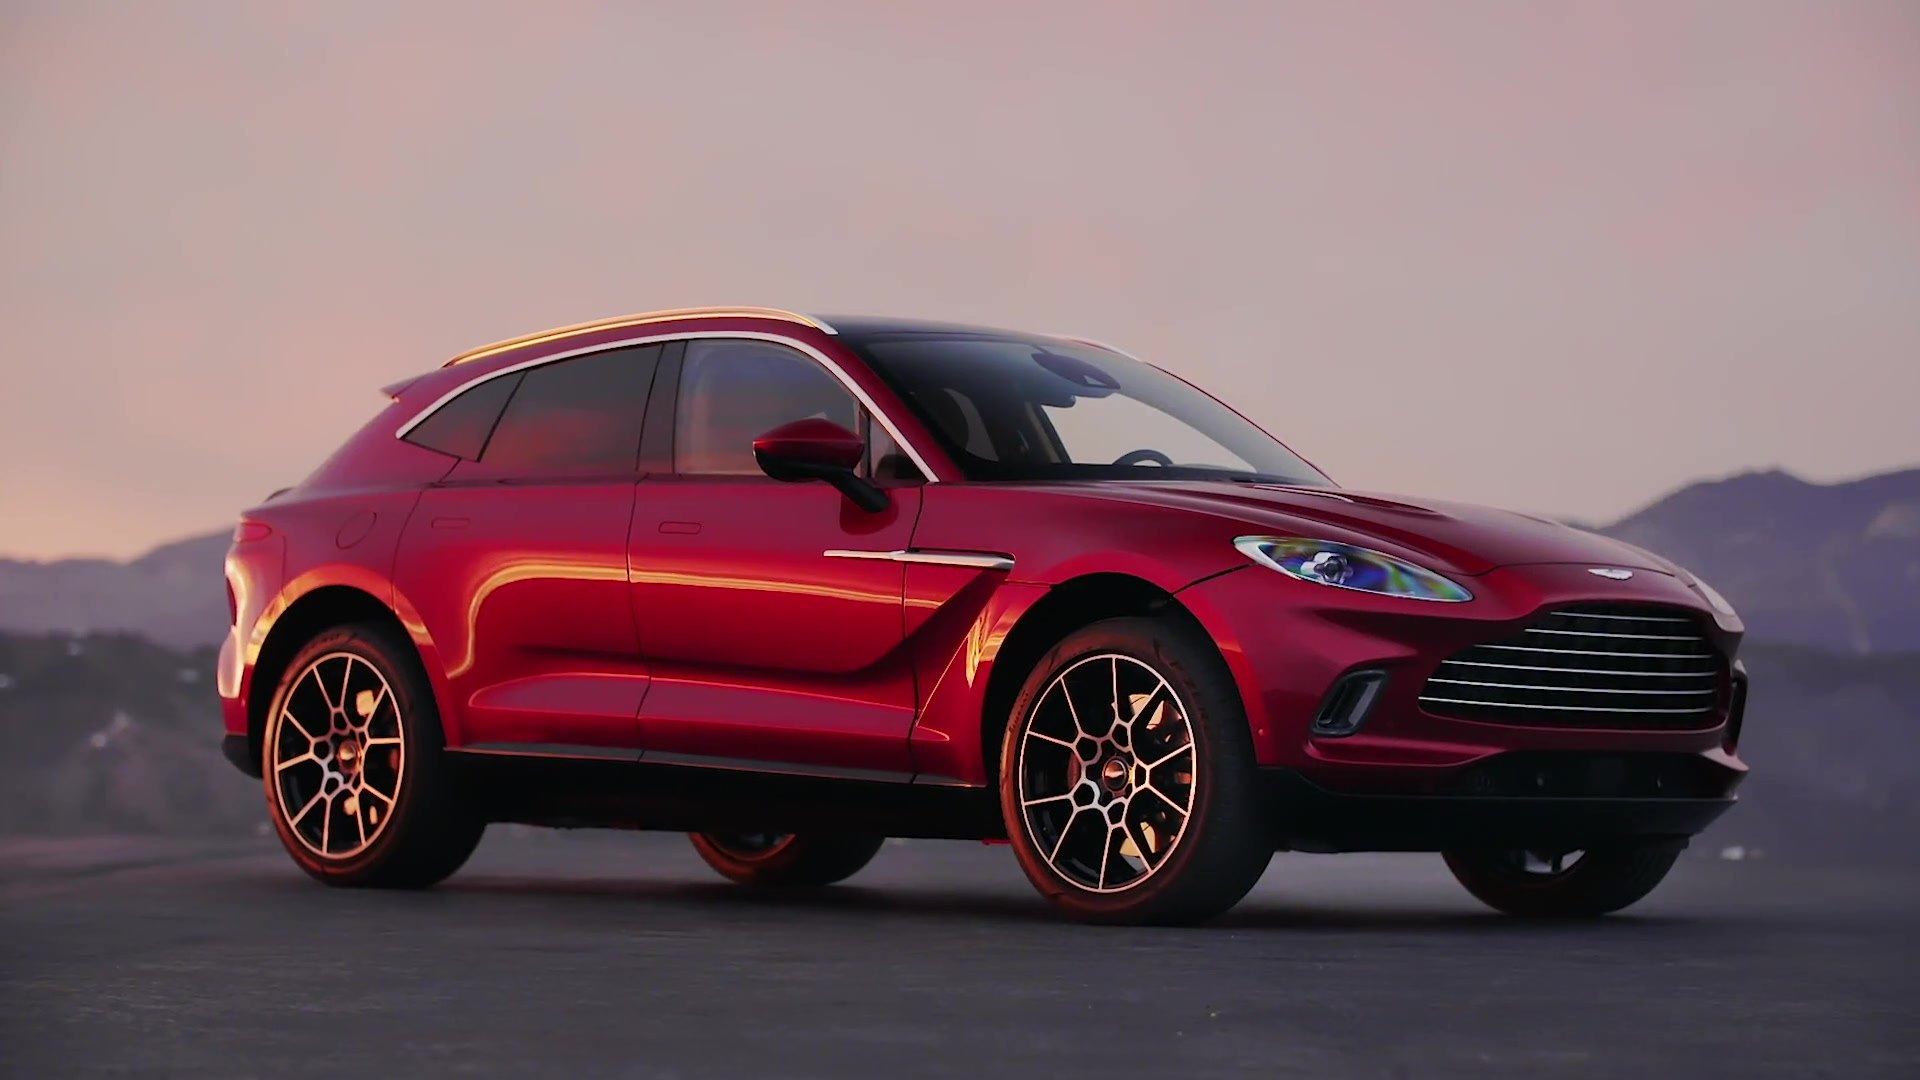 Aston Martin Dbx Preview In Hyper Red Video Dailymotion